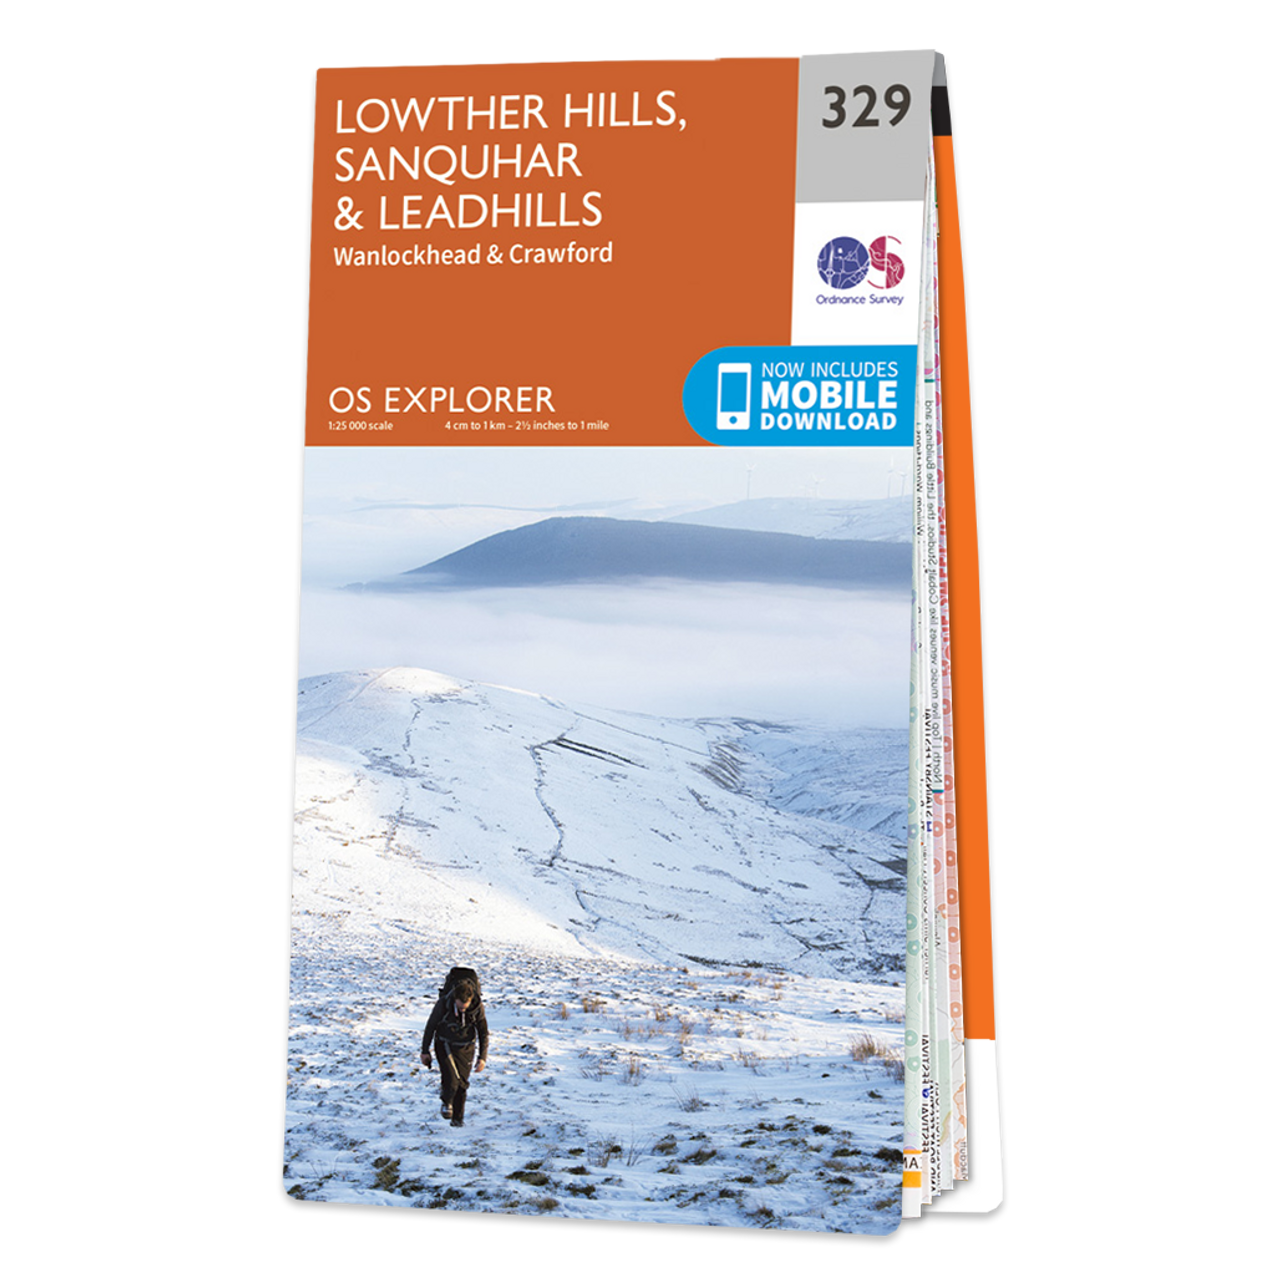 Map Of Lowther Hills  SanquharandLeadhills